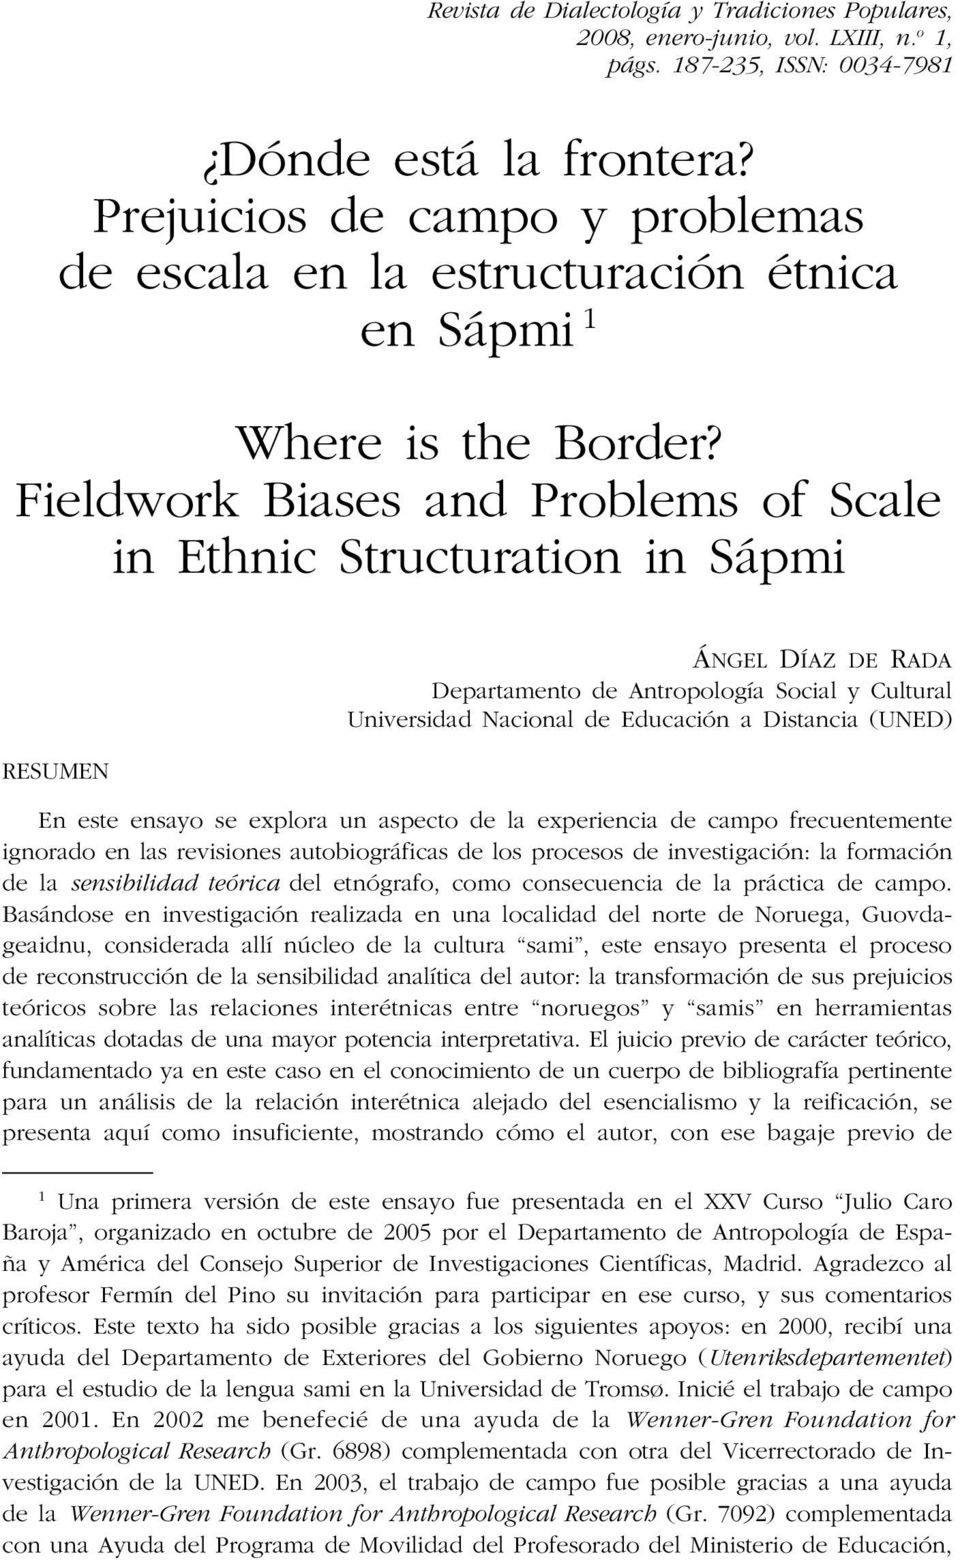 Fieldwork Biases and Problems of Scale in Ethnic Structuration in Sápmi RESUMEN ÁNGEL DÍAZ DE RADA Departamento de Antropología Social y Cultural Universidad Nacional de Educación a Distancia (UNED)